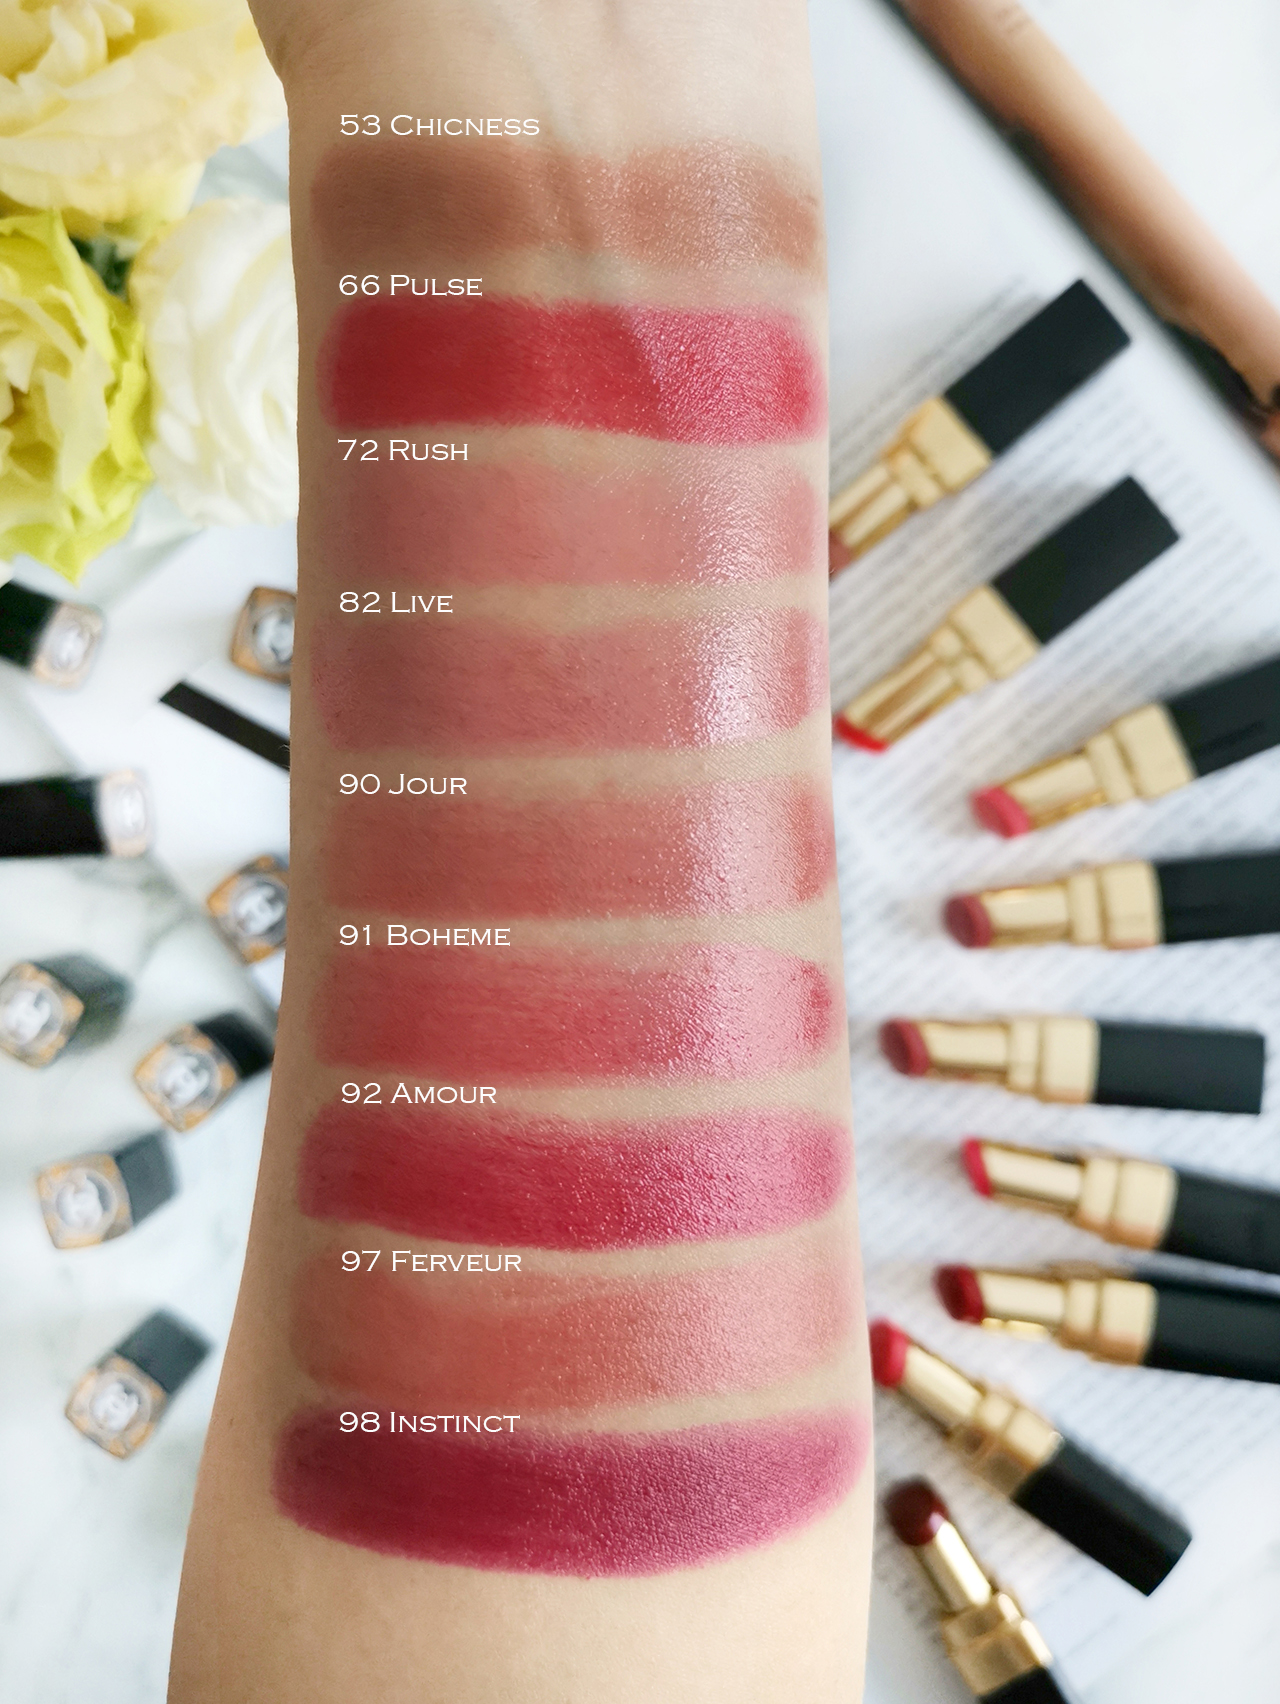 Chanel Coco Rouge Flash arm swatches